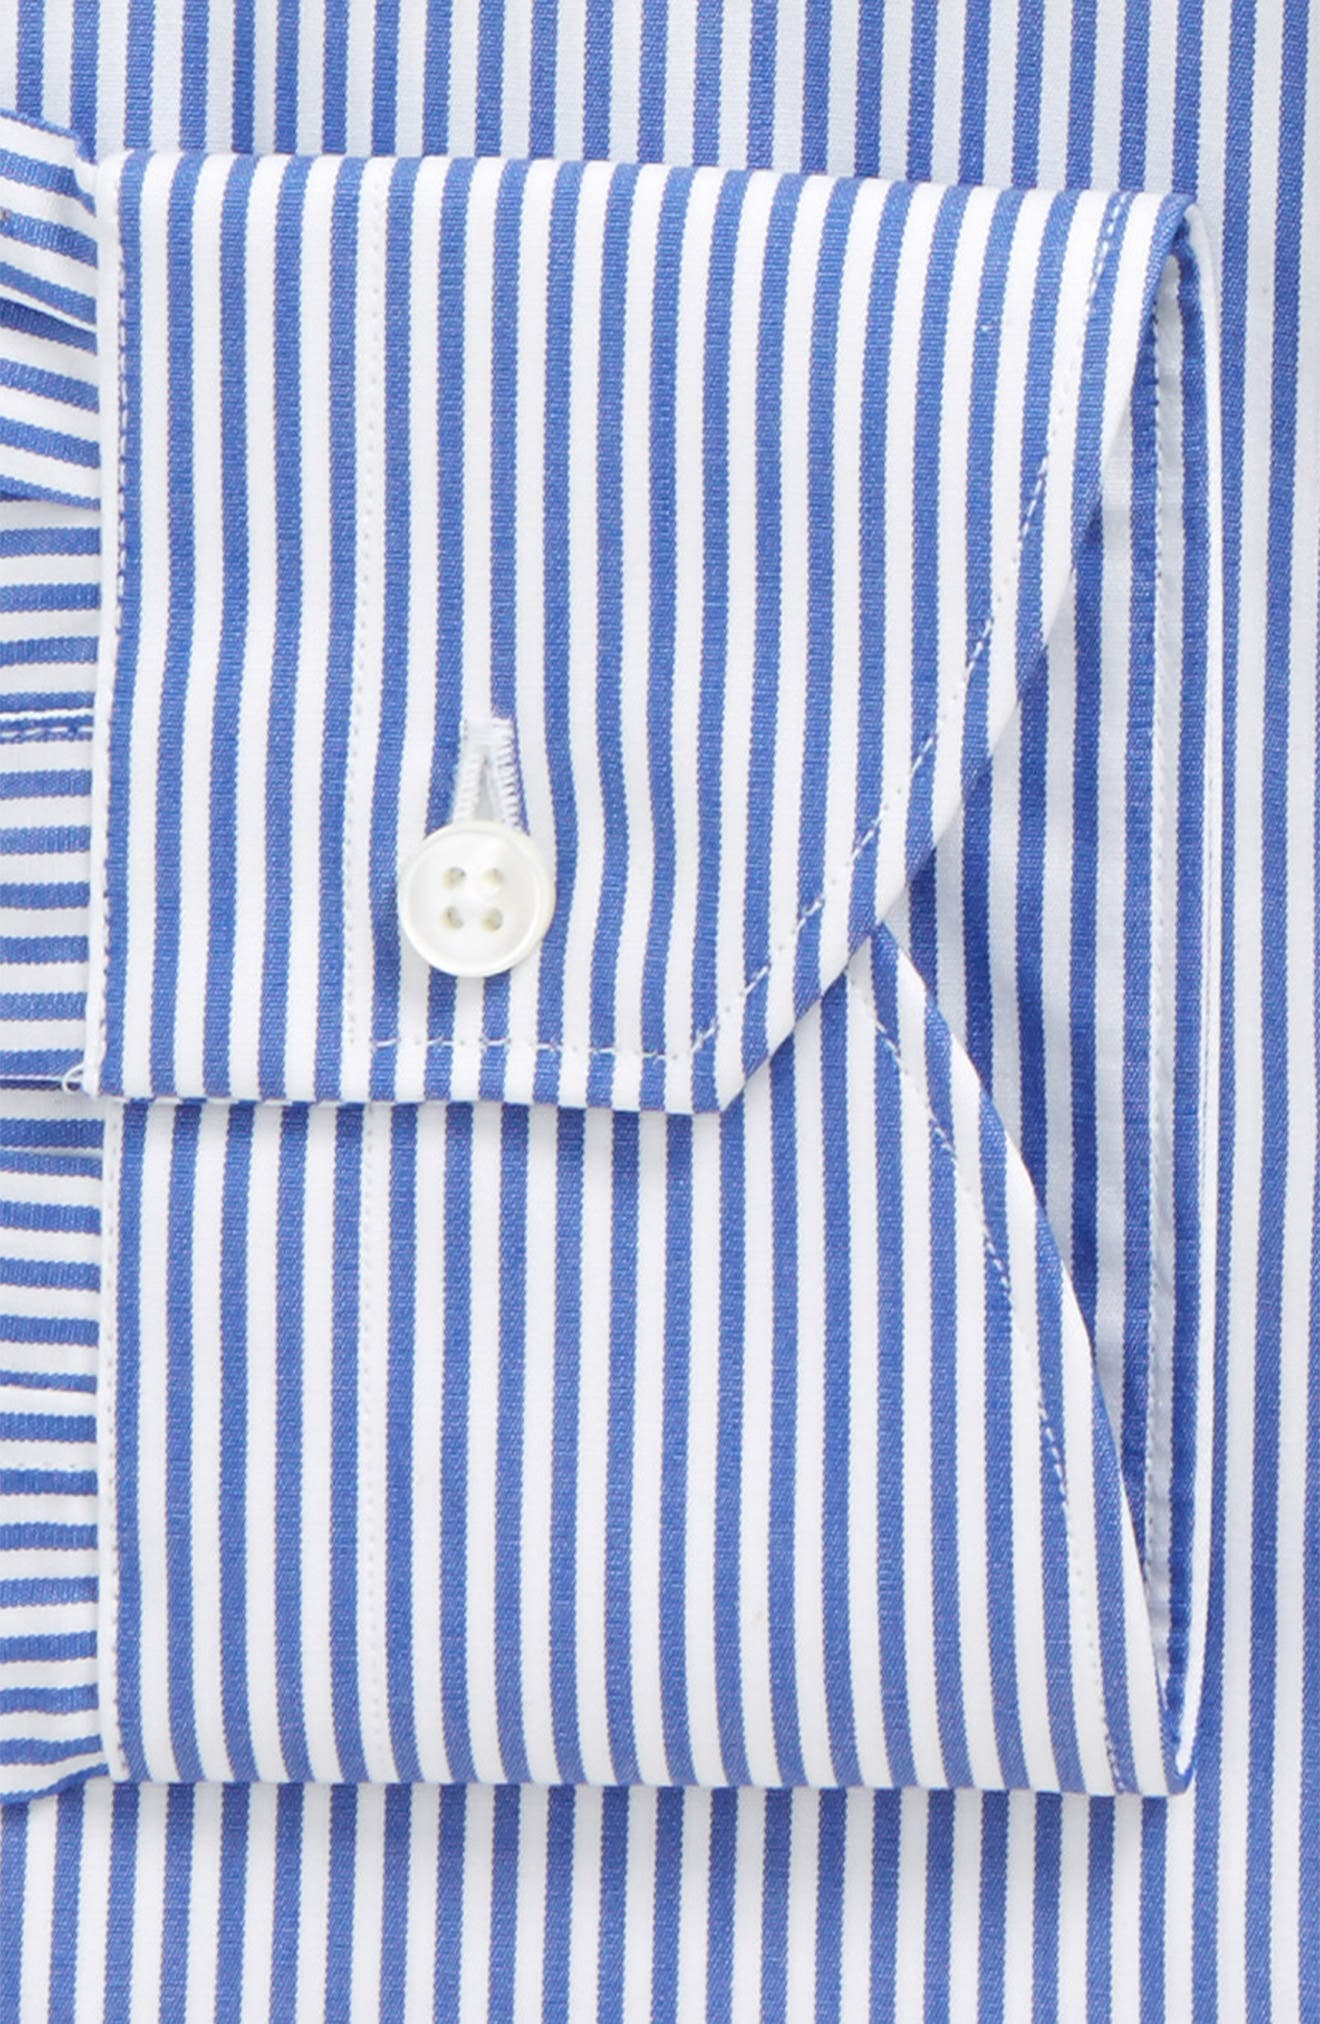 Regular Fit Stripe Dress Shirt,                             Alternate thumbnail 2, color,                             Navy